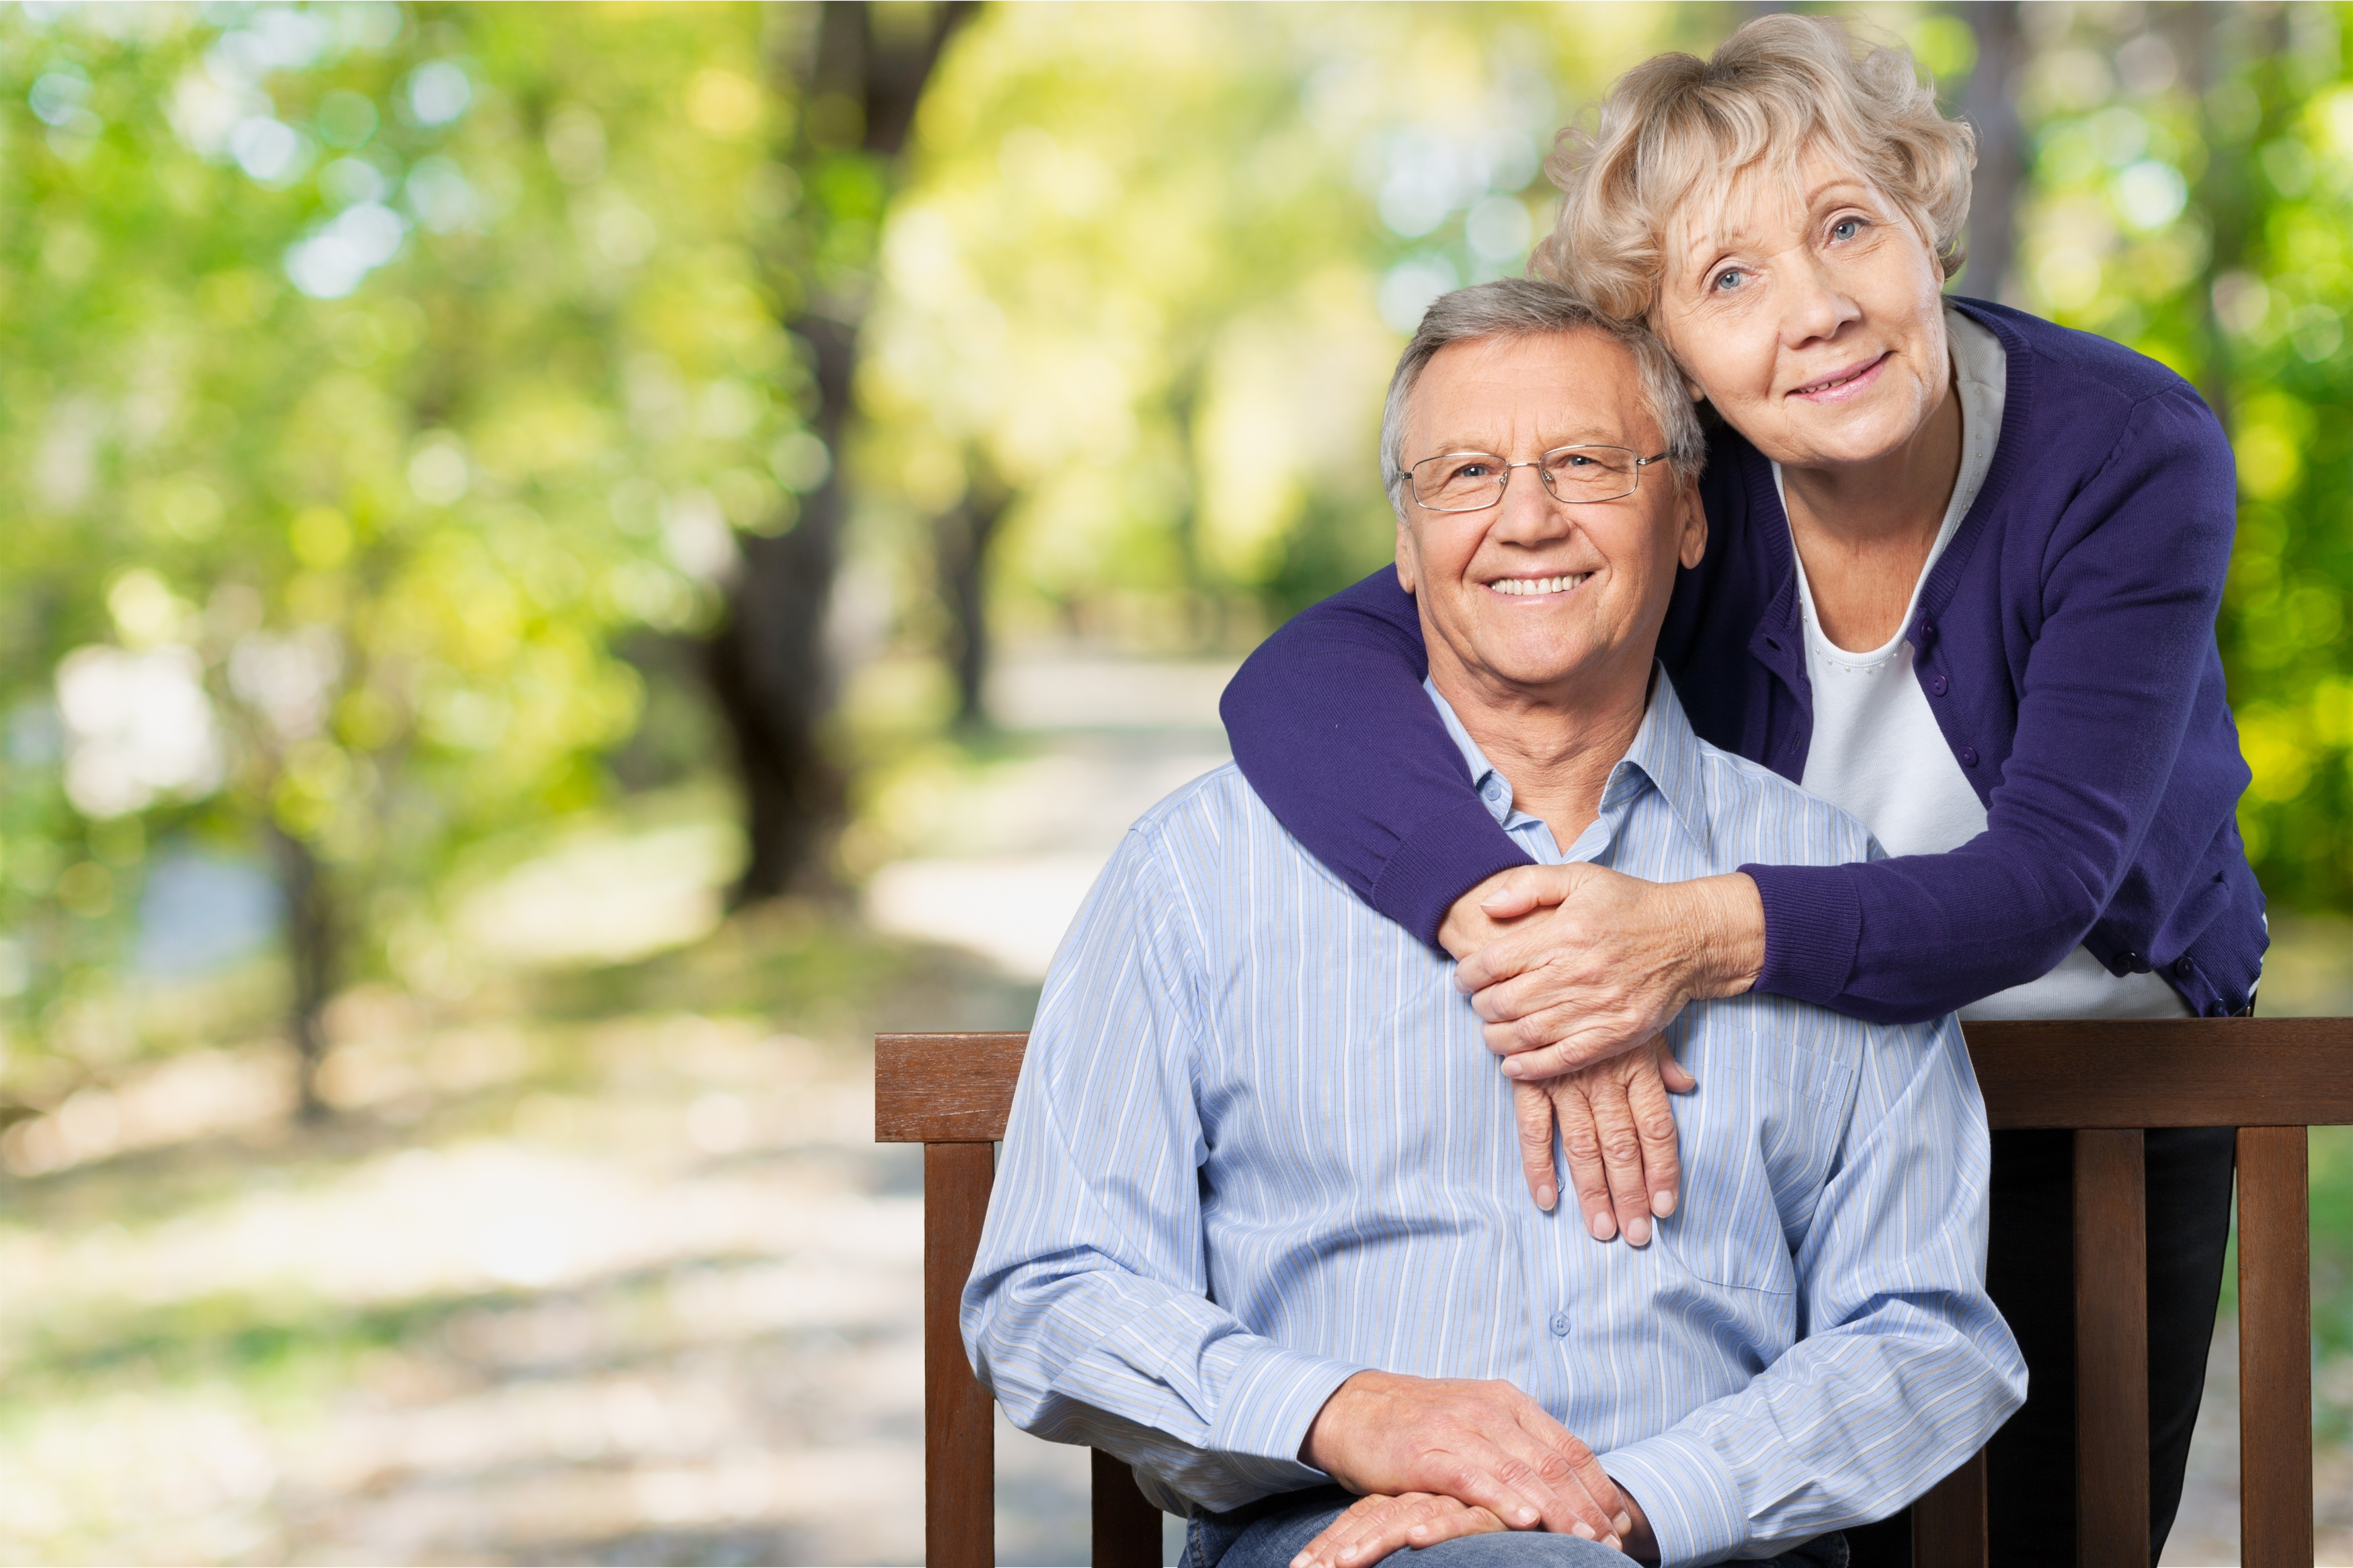 Where To Meet Black Wealthy Seniors